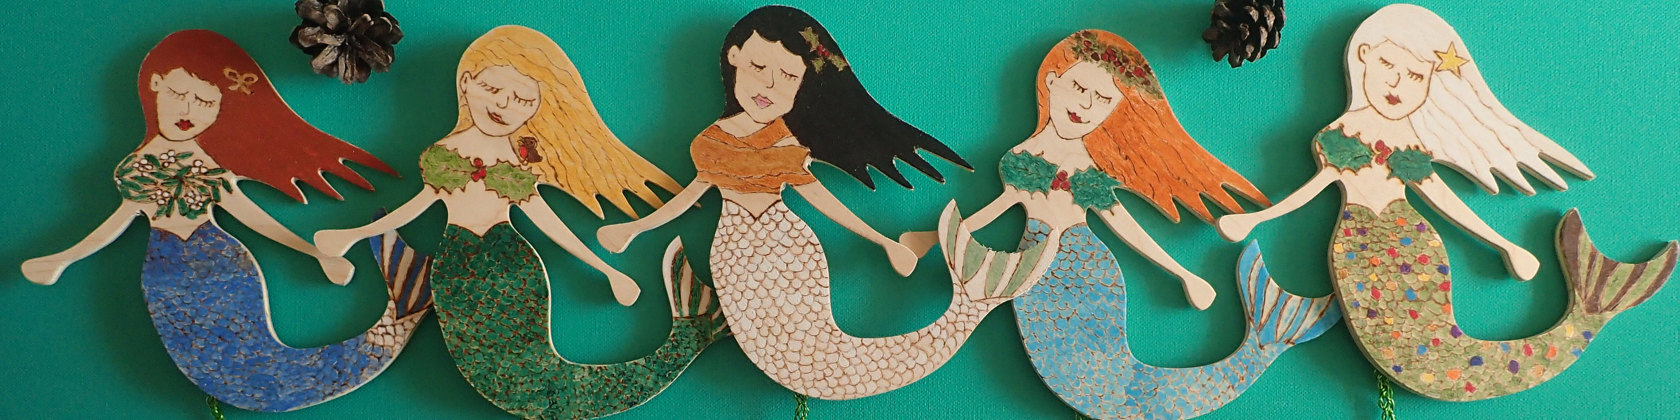 christmas mermaid inspiration